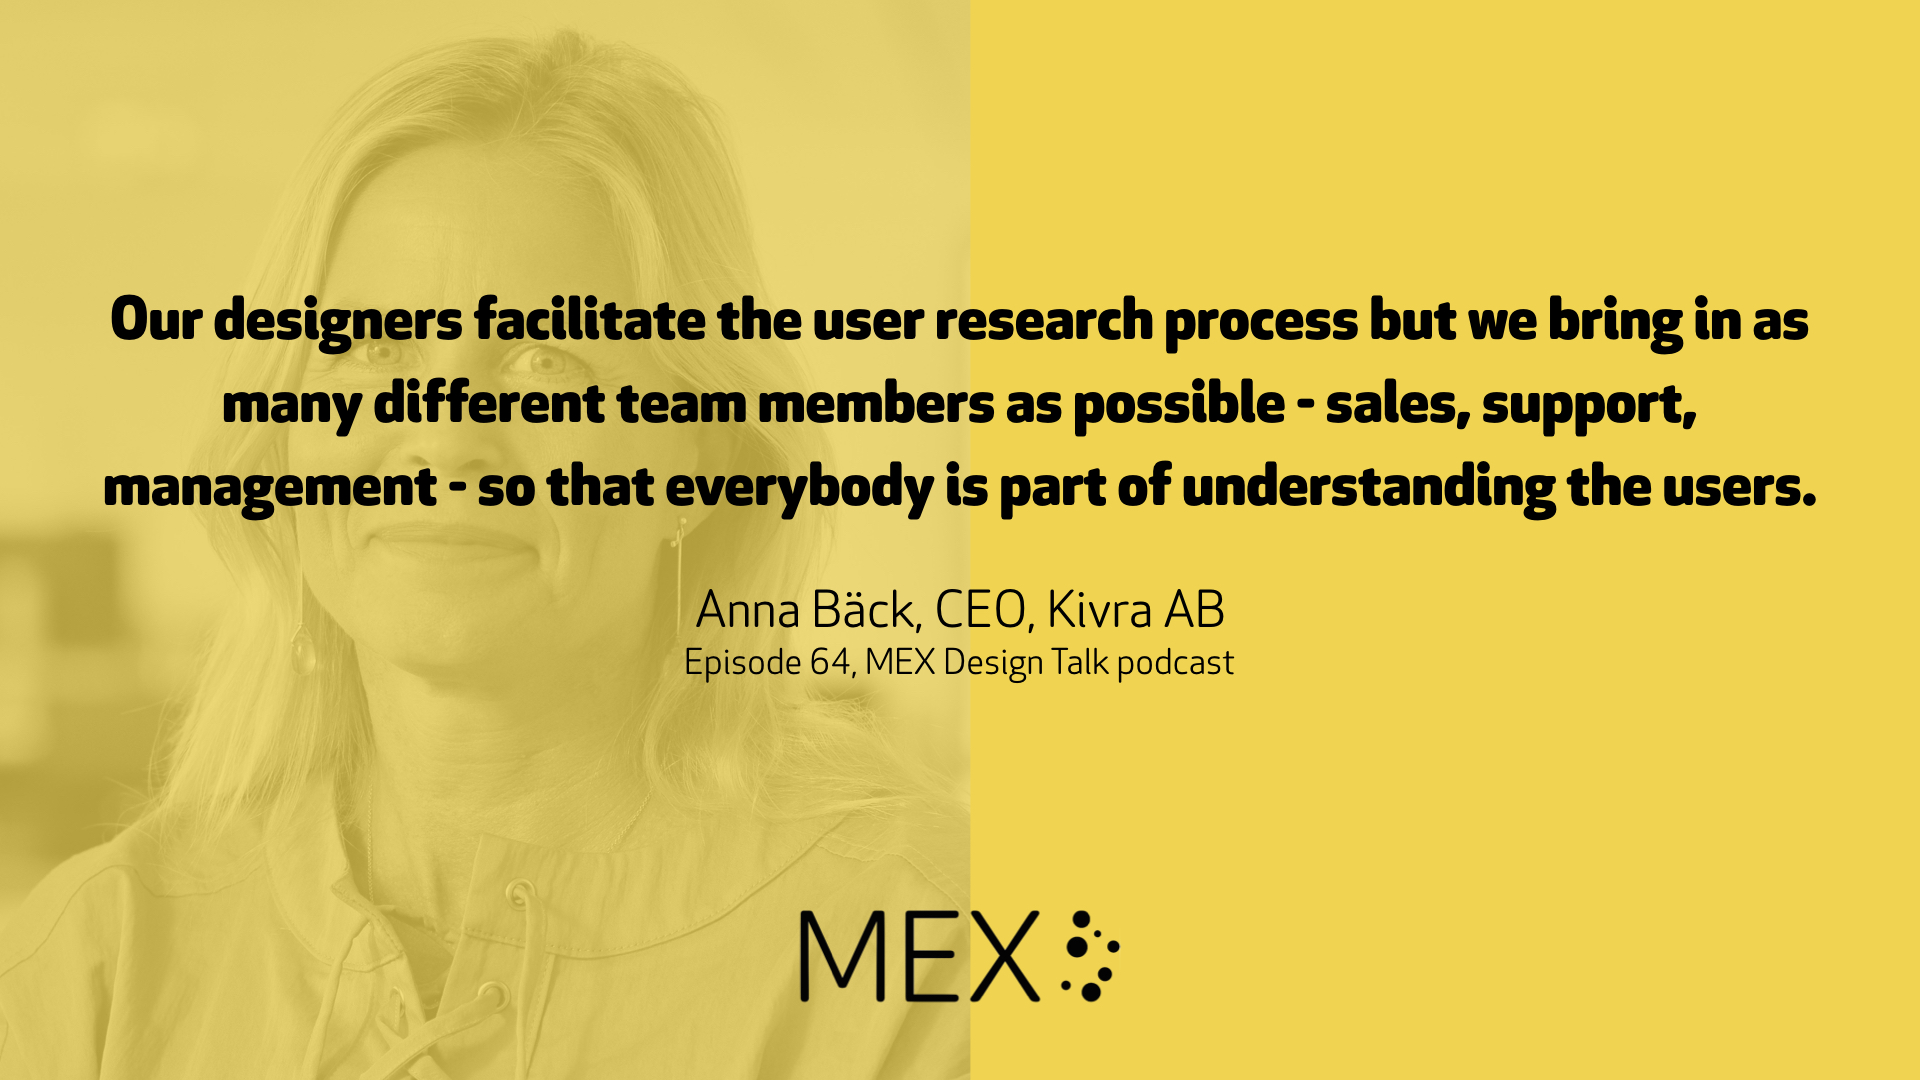 Our designers facilitate the user research process but we bring in as many different team members as possible - sales, support, management - so that everybody is part of understanding the users. Anna Bäck, CEO, Kivra AB Episode 64, MEX Design Talk podcast